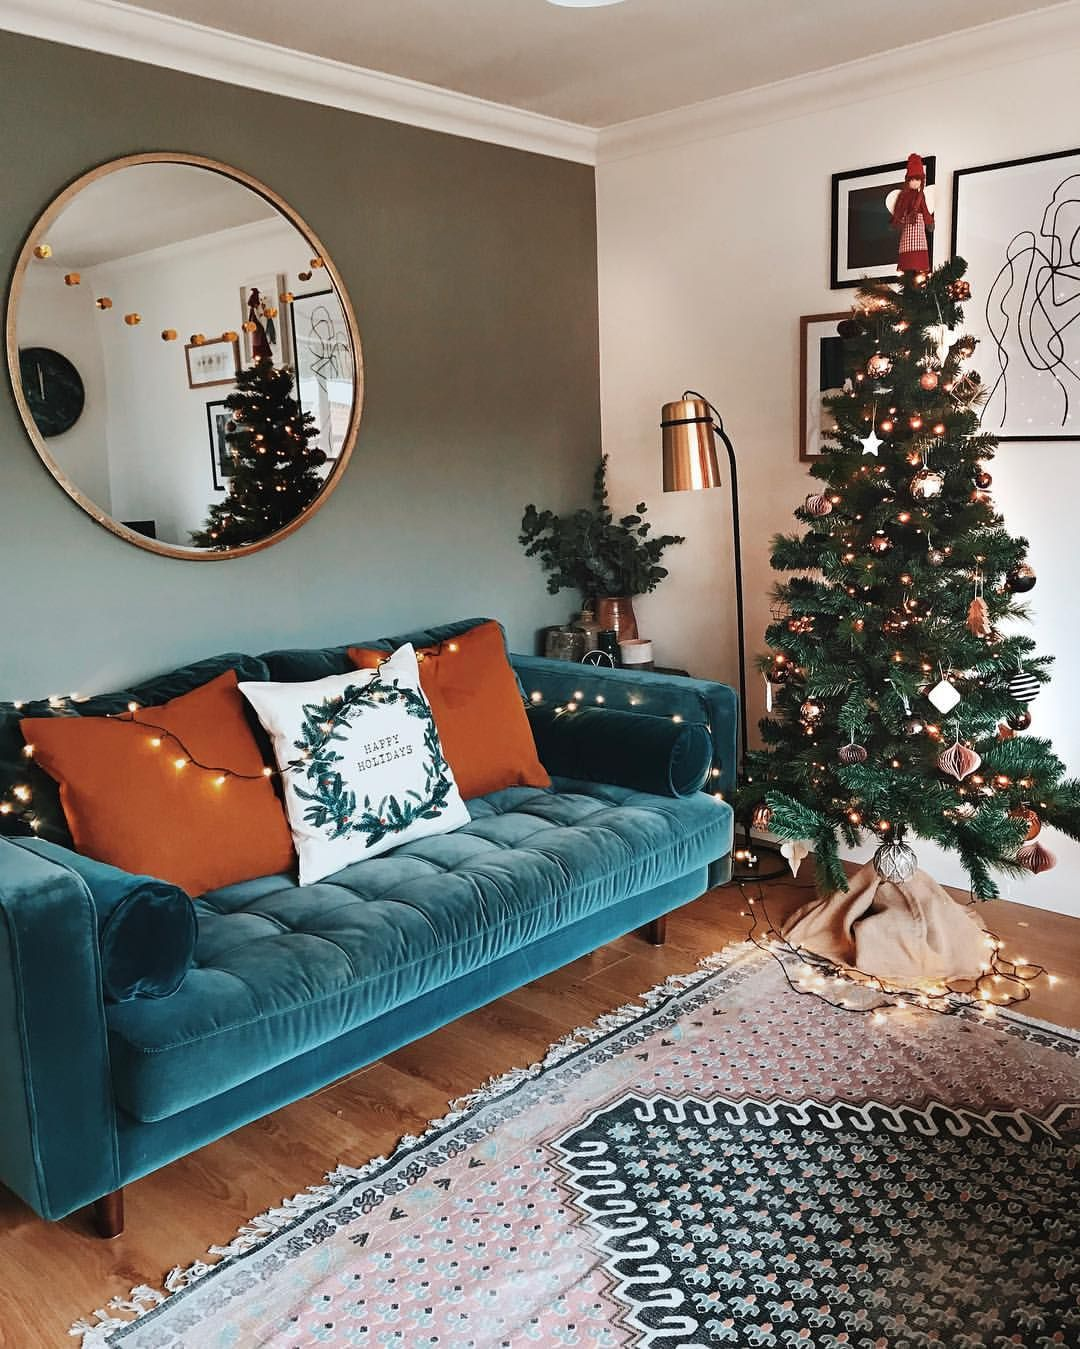 Cozy Christmas Decor With Teal Velvet Sofa And Muted Teal Walls